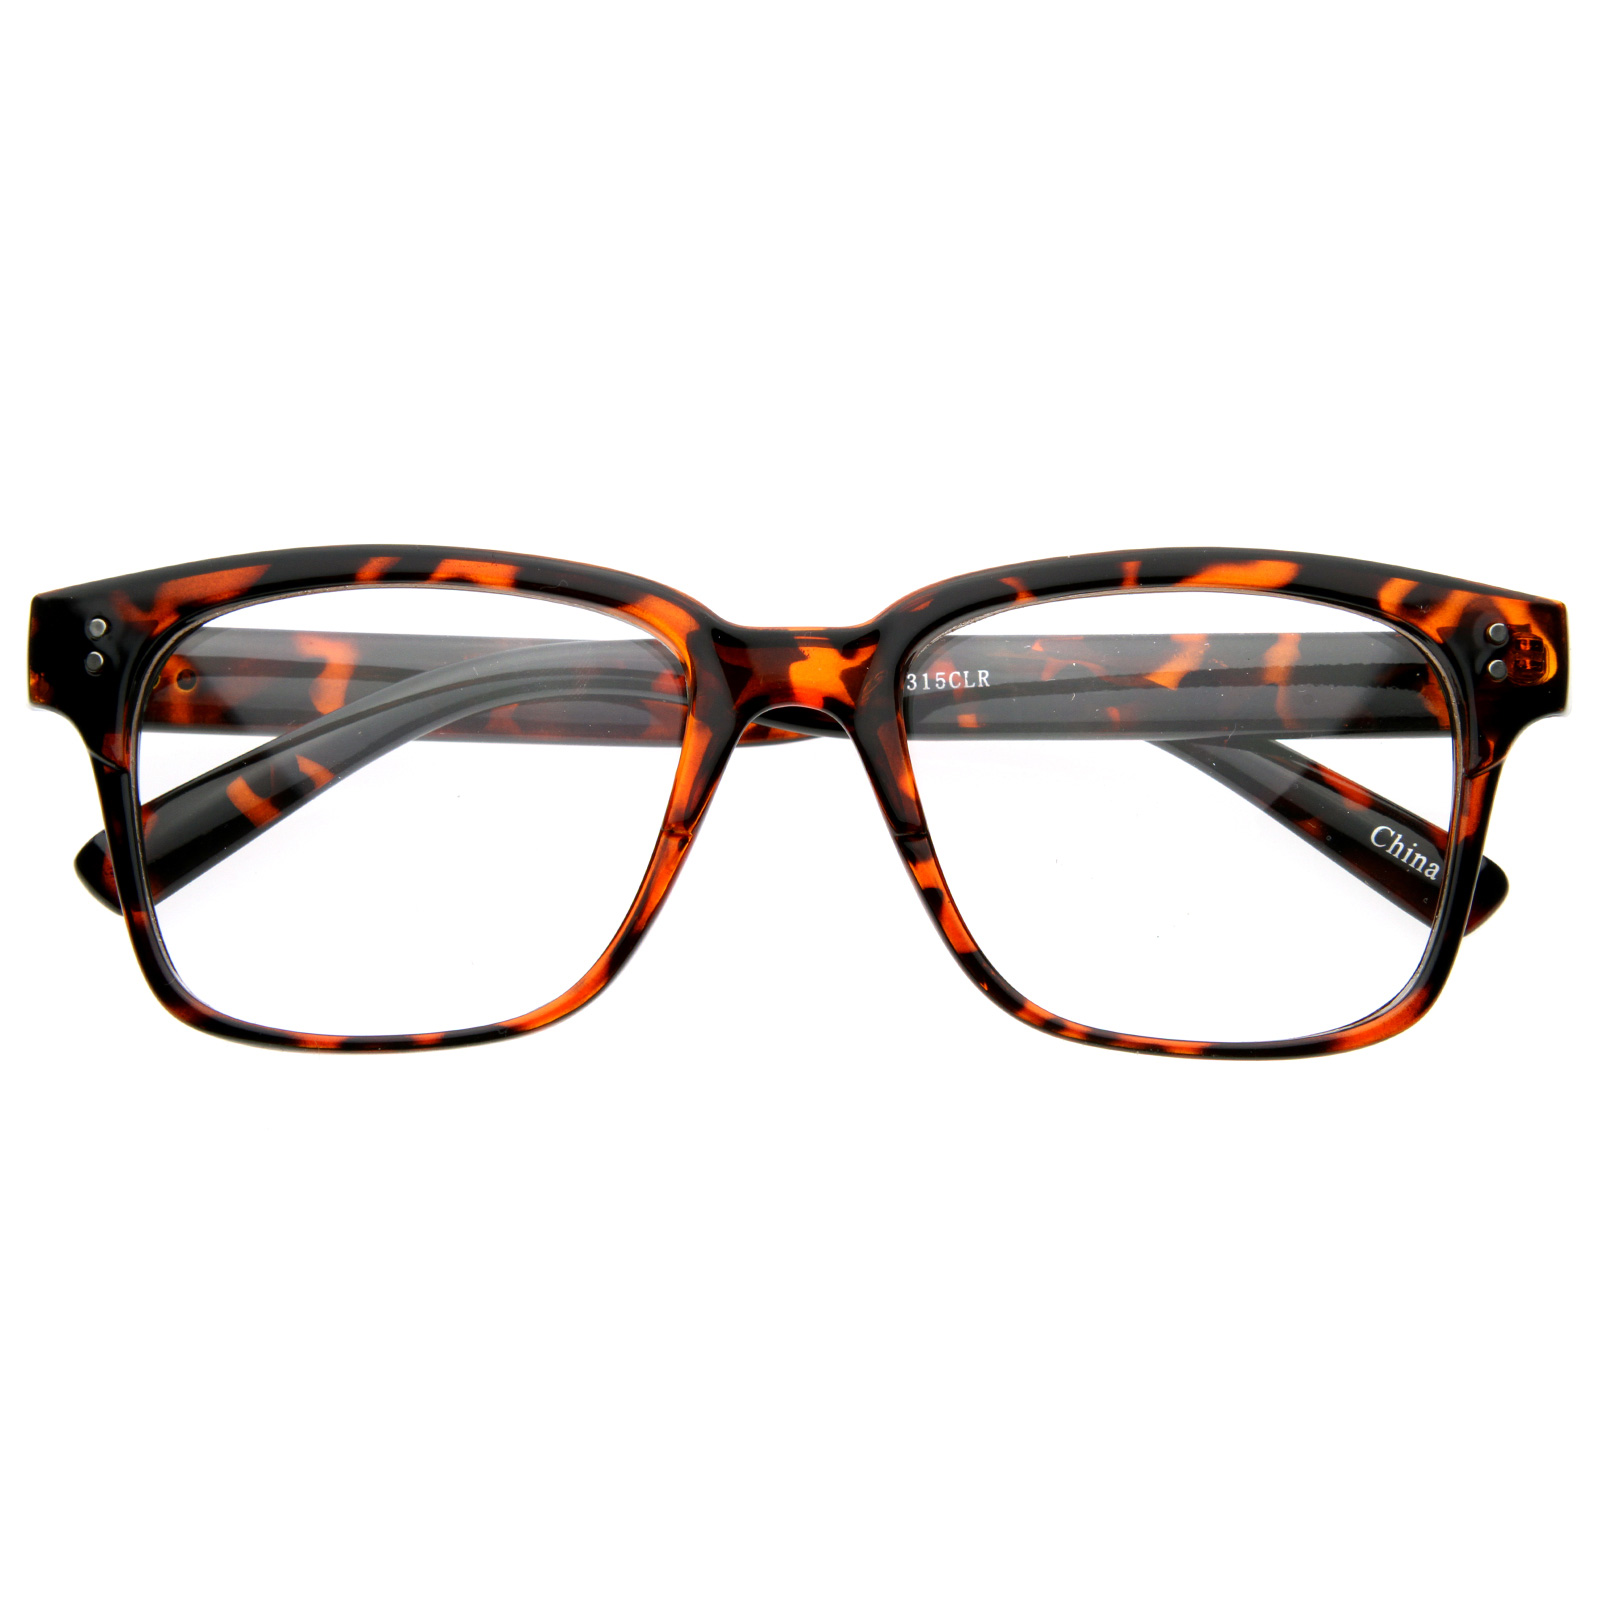 New-Vintage-Fashion-Nerd-Clear-Lens-UV400-Horned-Rim-Shades-Style-Glasses-8158